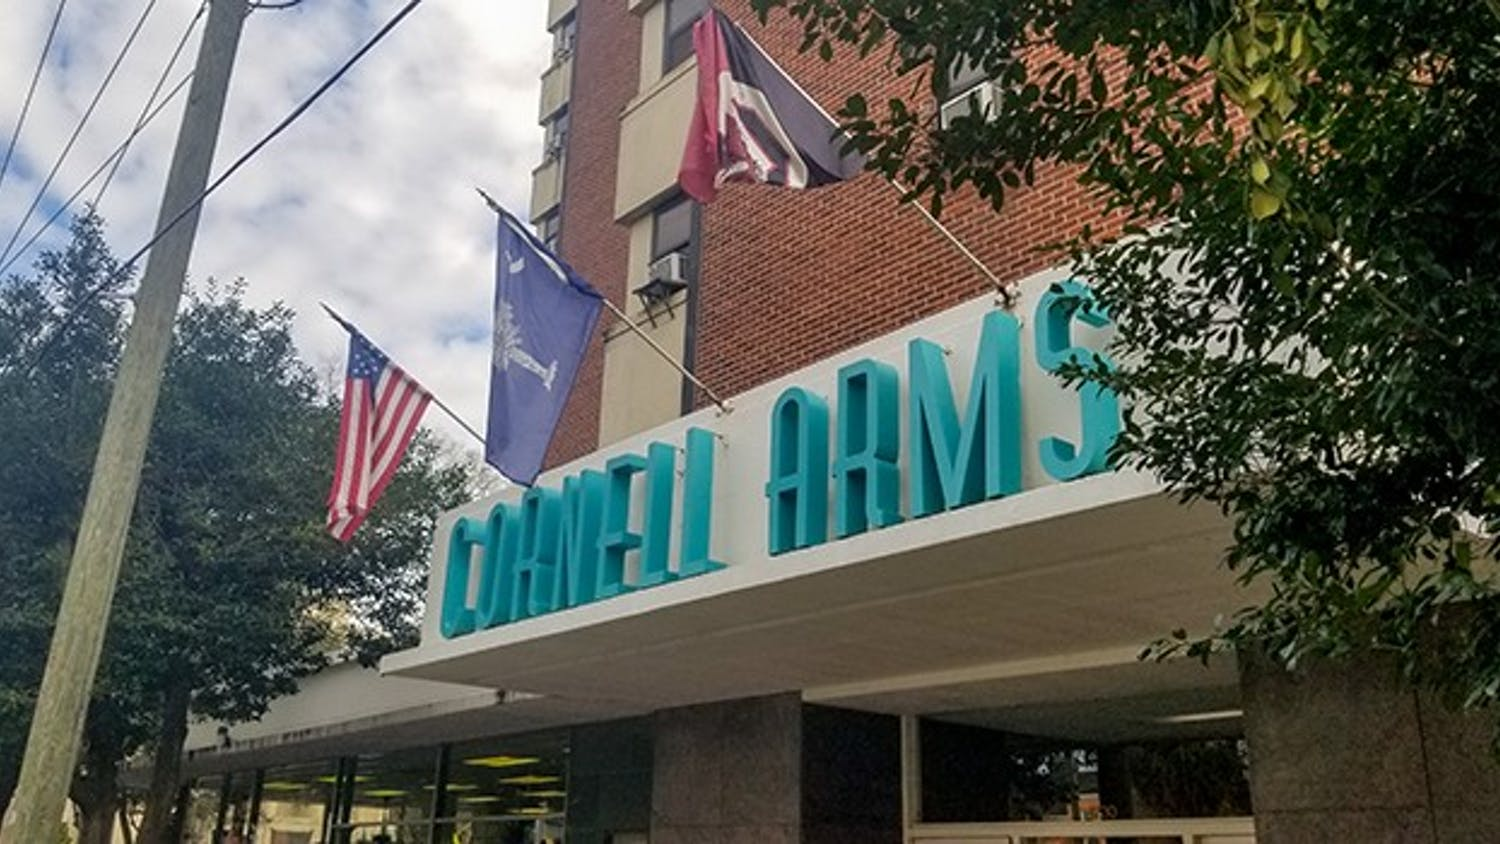 """""""Cornell Arms Apartments is located just a block away from the Horseshoe on Pendleton Street. The building houses a mix of students, non-students and families."""""""